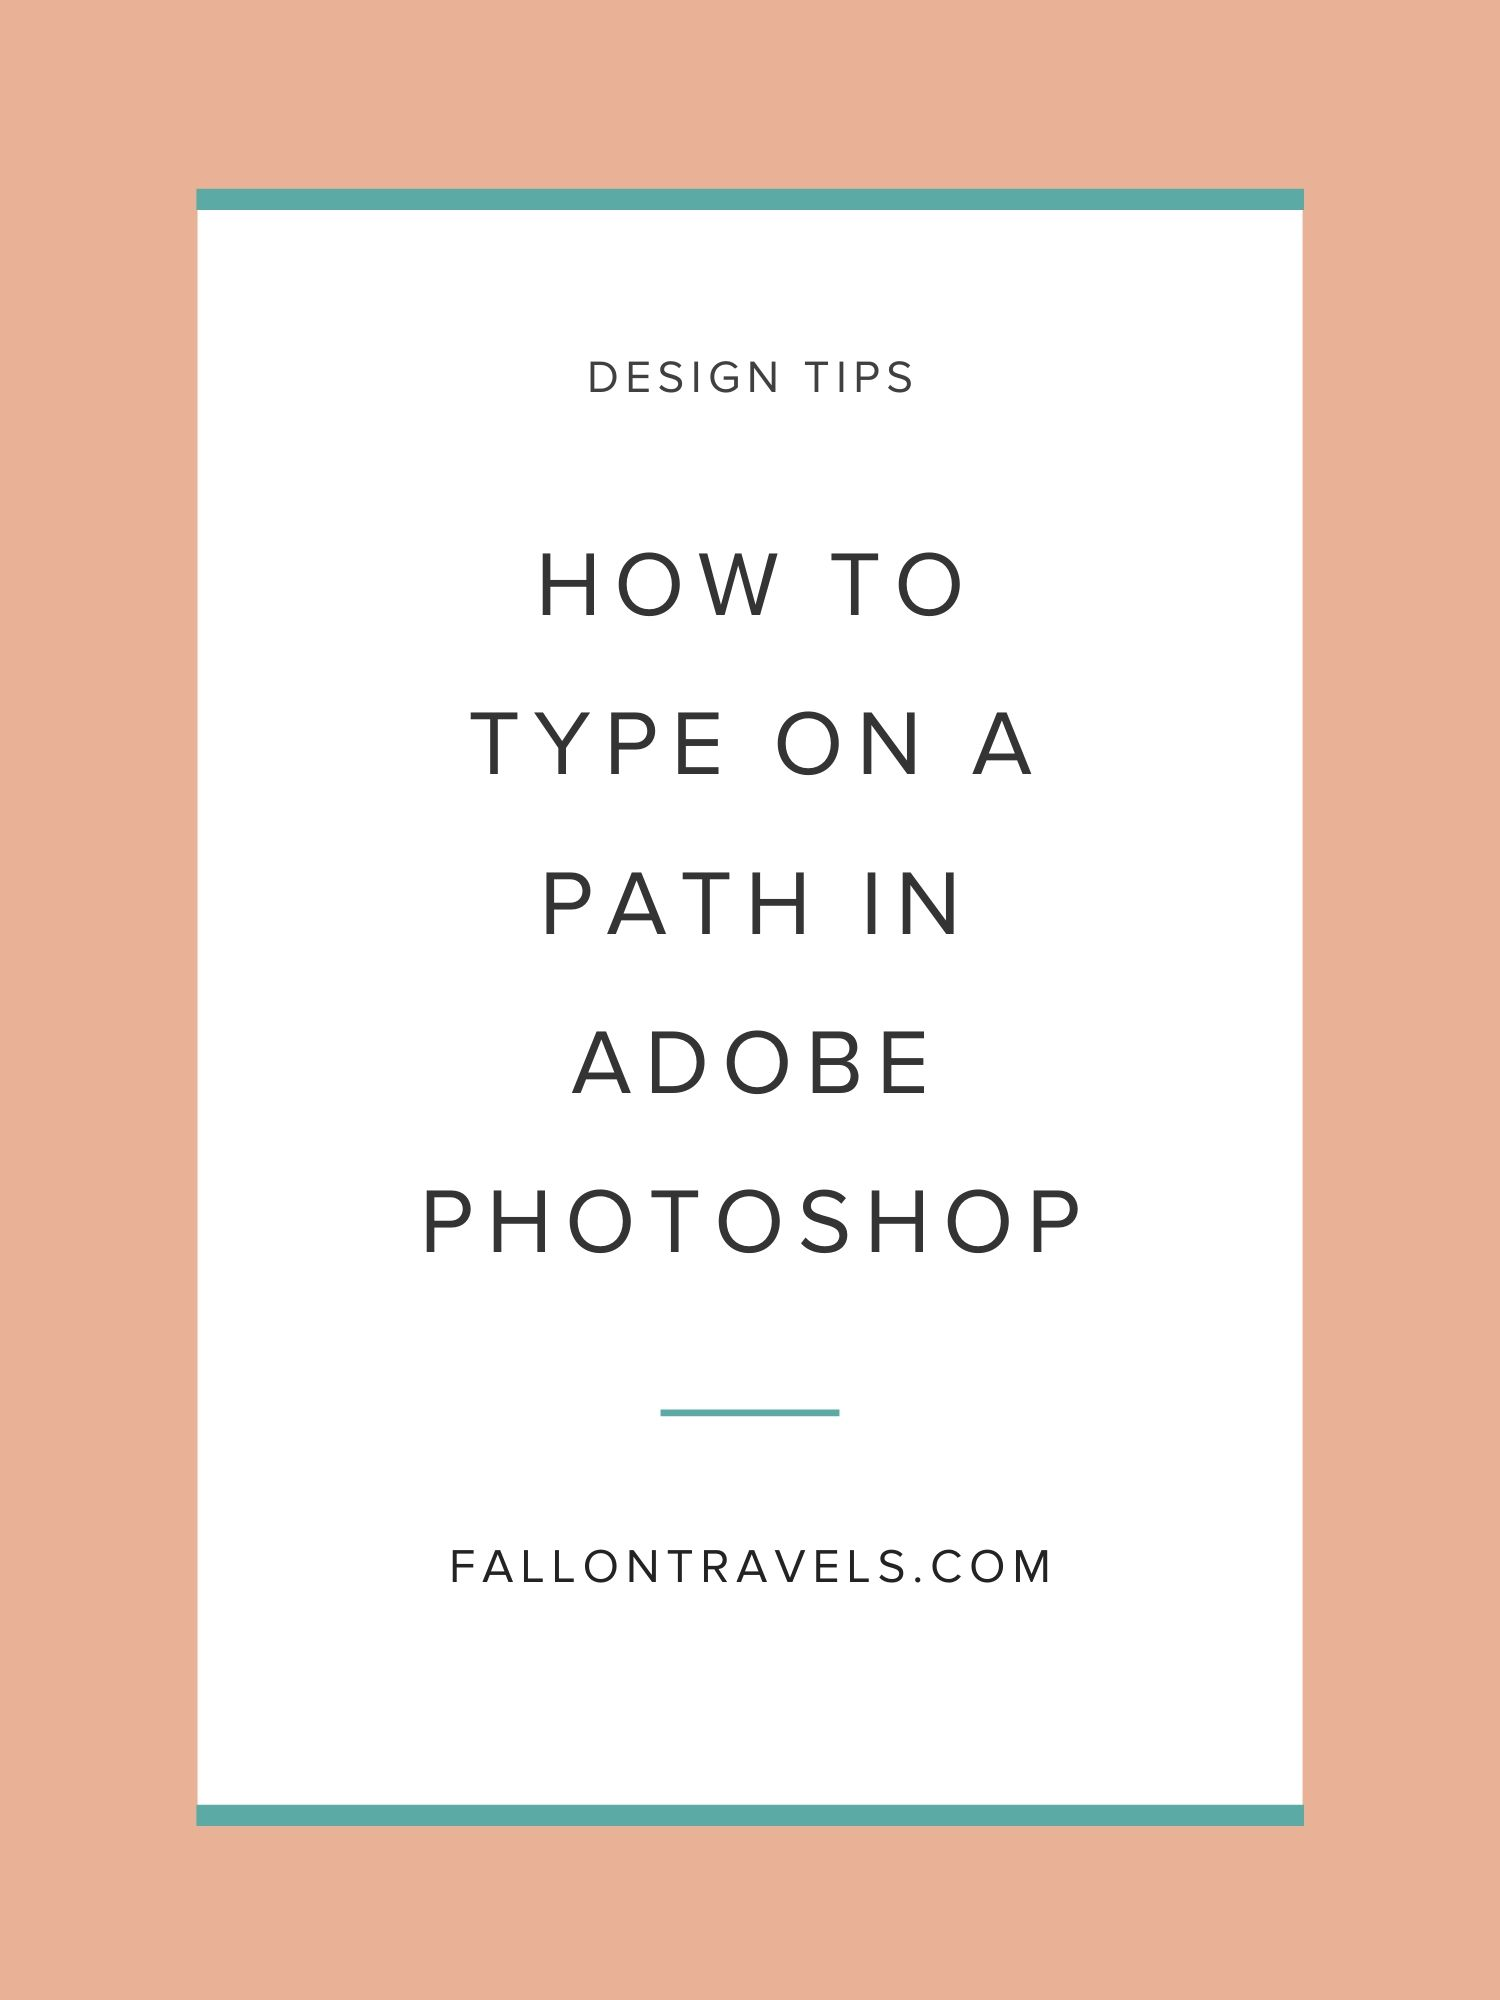 How to type on a path in Photoshop